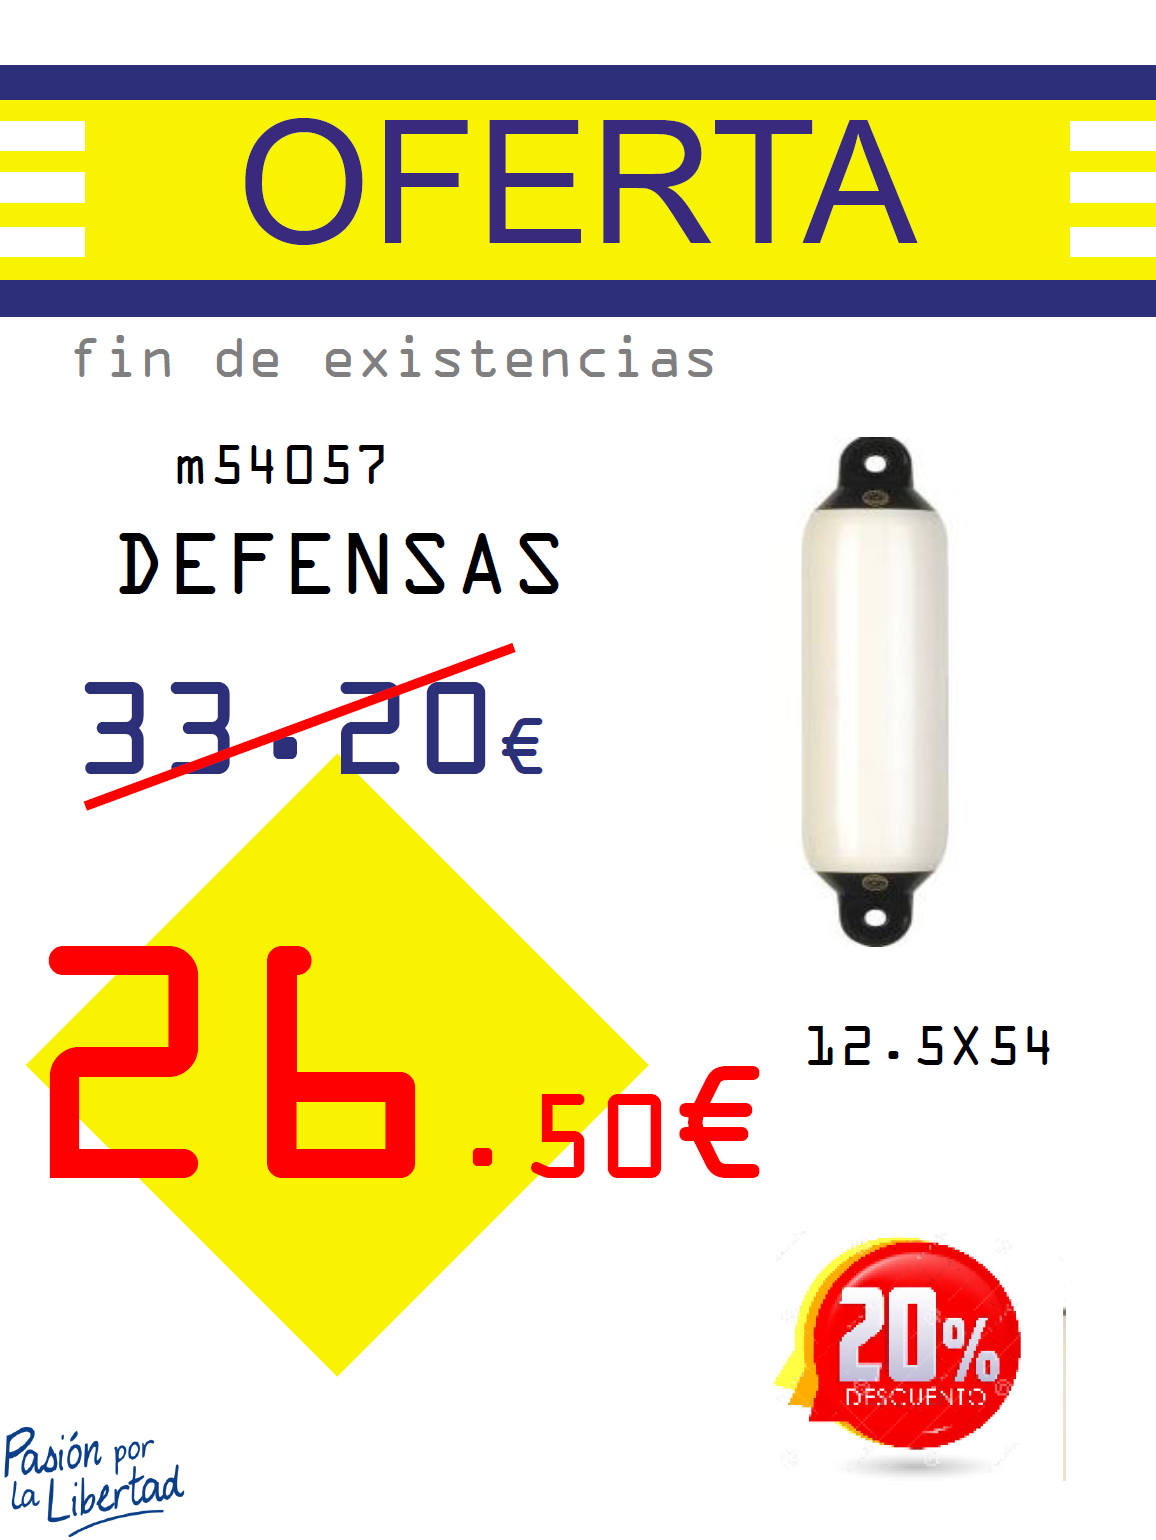 DEFENSAS DAN FENDER 12.5X54